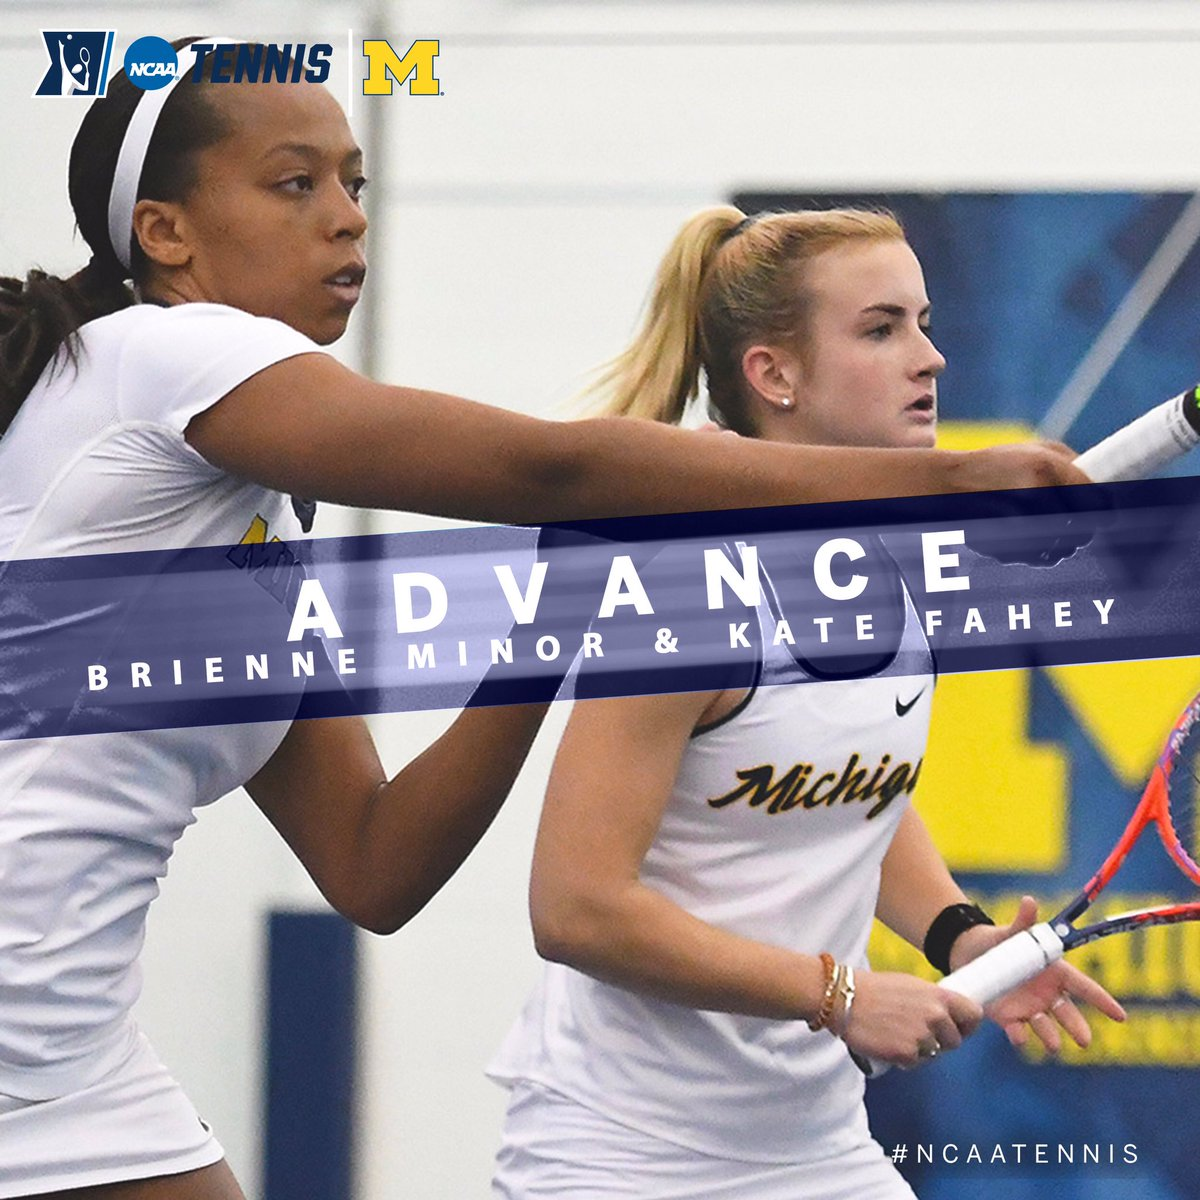 Congrats to @UMichWTennis doubles team of Kate Fahey & Brienne Minor on advancing the the @NCAATennis Doubles Semifinals with a 6-2, 3-6 (10-8) win over a Georgia pair in the Quarterfinals in Orlando. #B1GWTennis